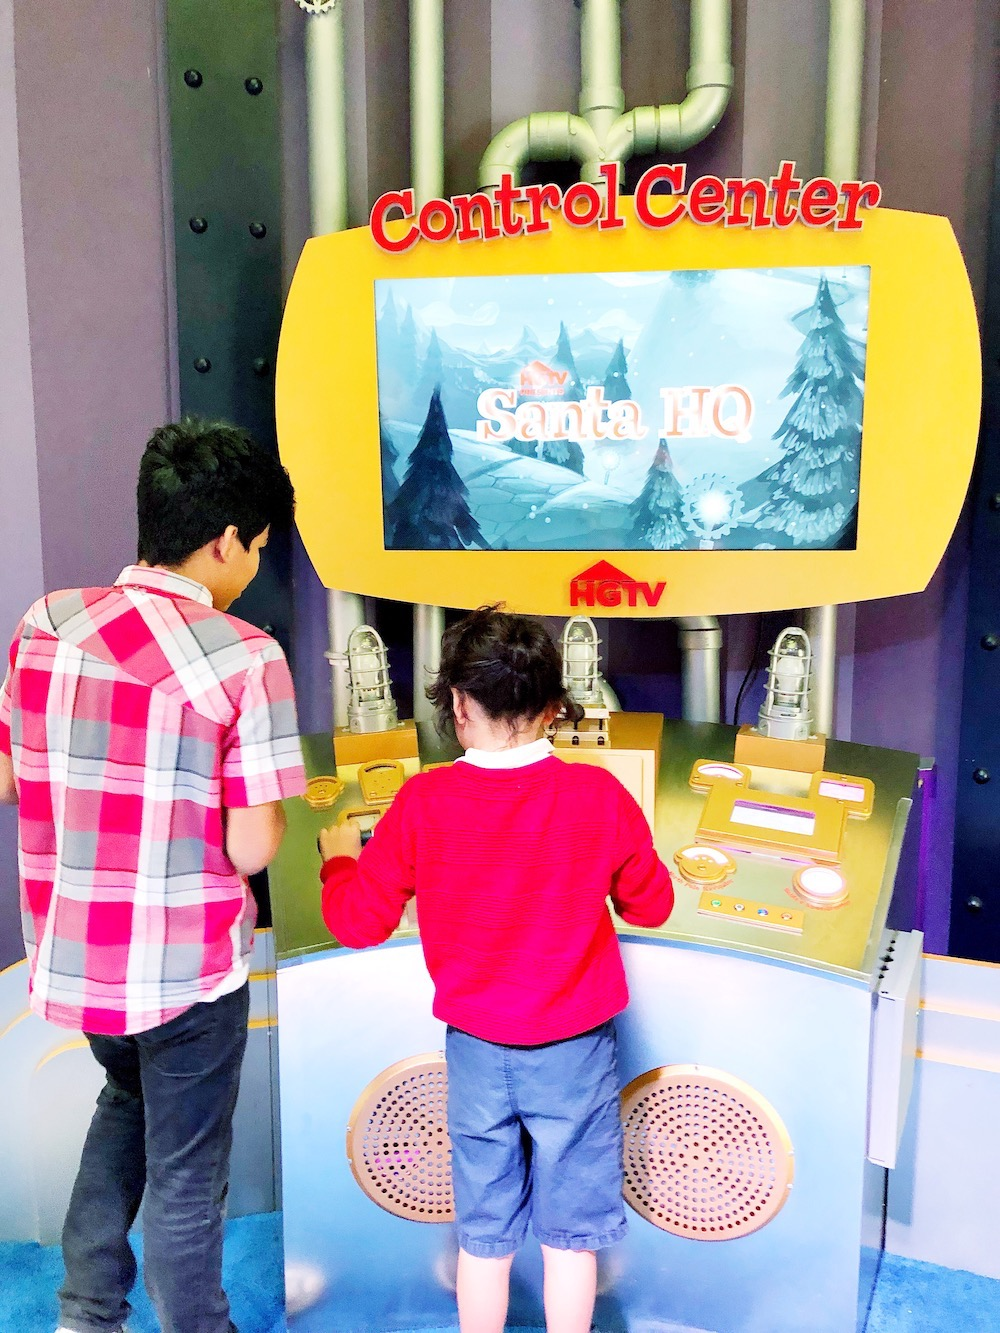 Visit Santa at Los Cerritos Center at Santa HQ, presented by HGTV. Kids can turn into elves, try the Naughty or Nice O'Meter and meet Santa! | LivingMiVidaLoca.com | #LivingMiVidaLoca #SantaHQ #LoveHGTV #LosCerritosMall